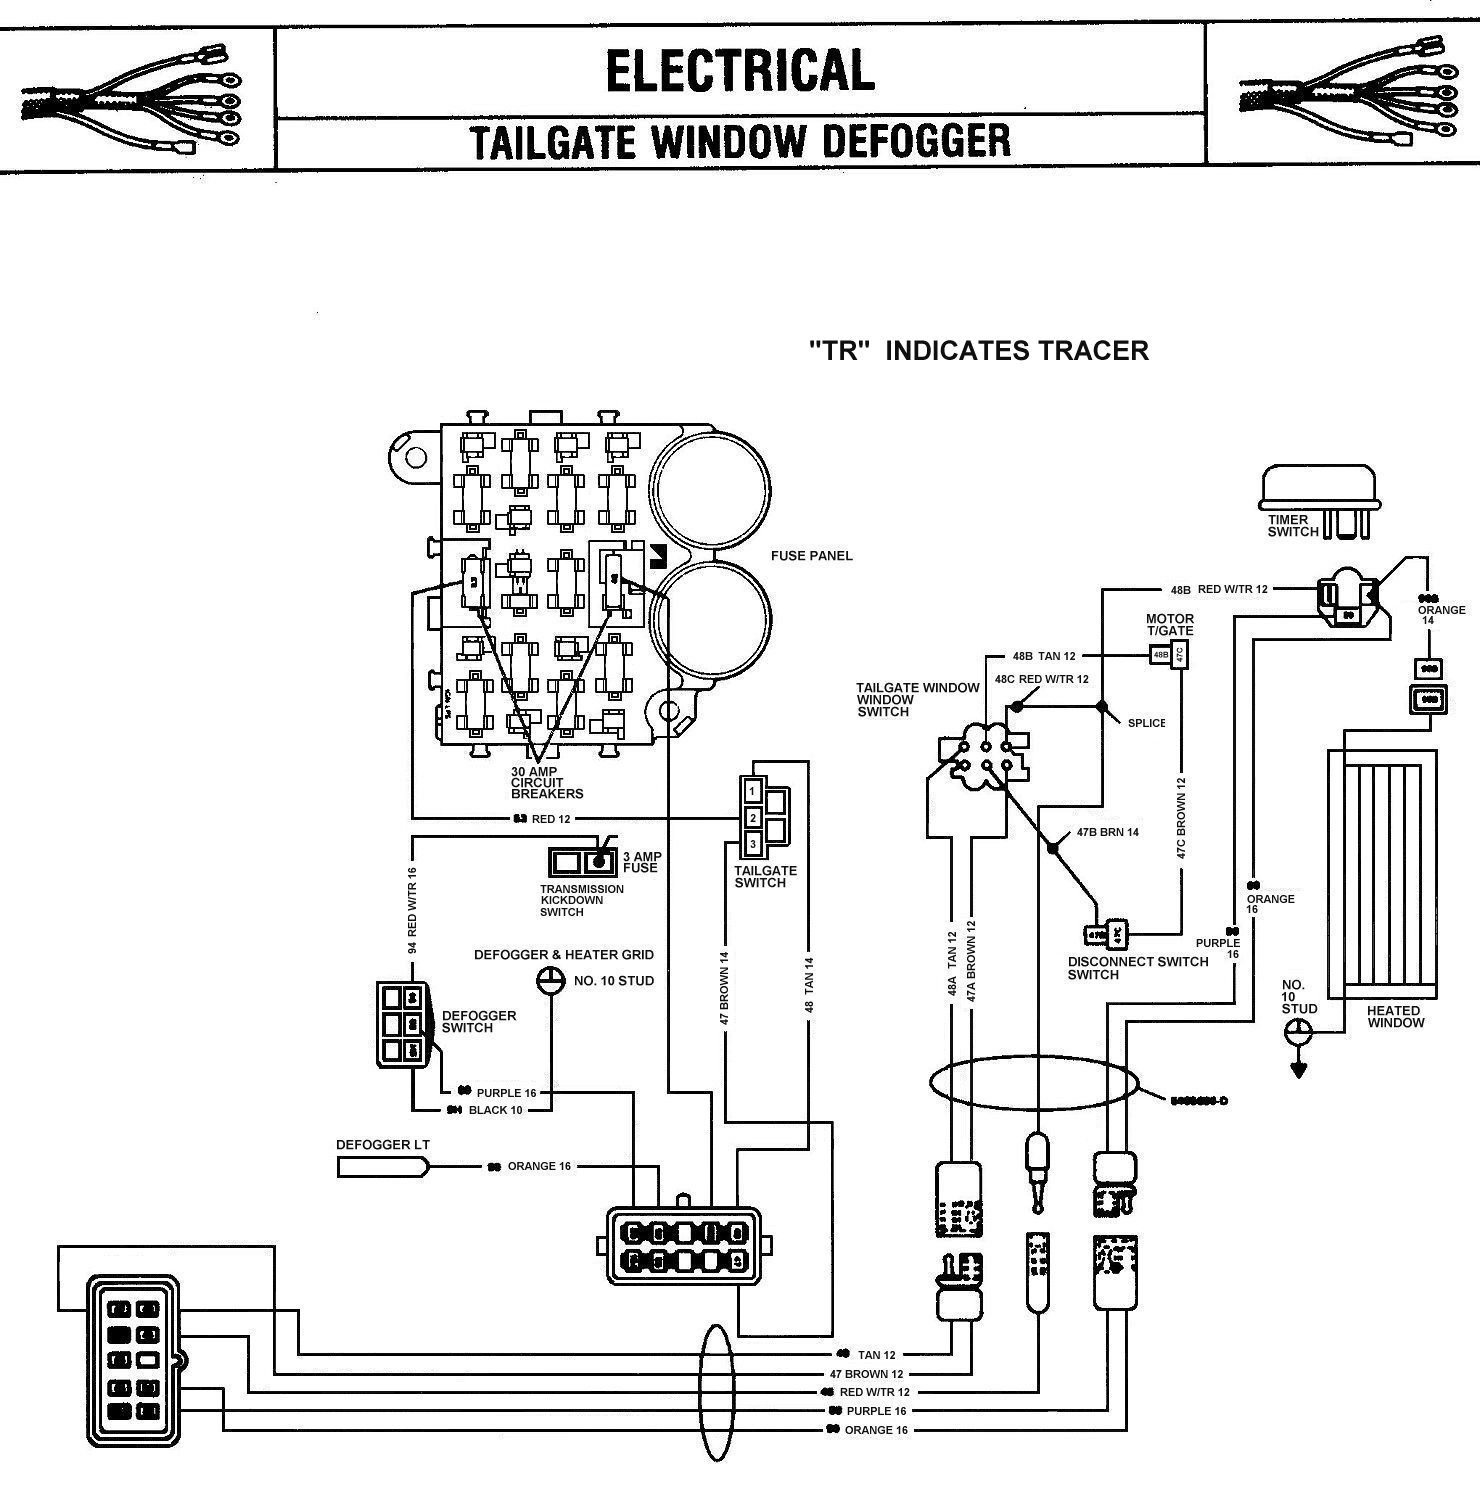 1980 Cj7 Wire Diagram Starting Wiring Library 1982 Jeep Alternator Wagoneer Data Schema 84